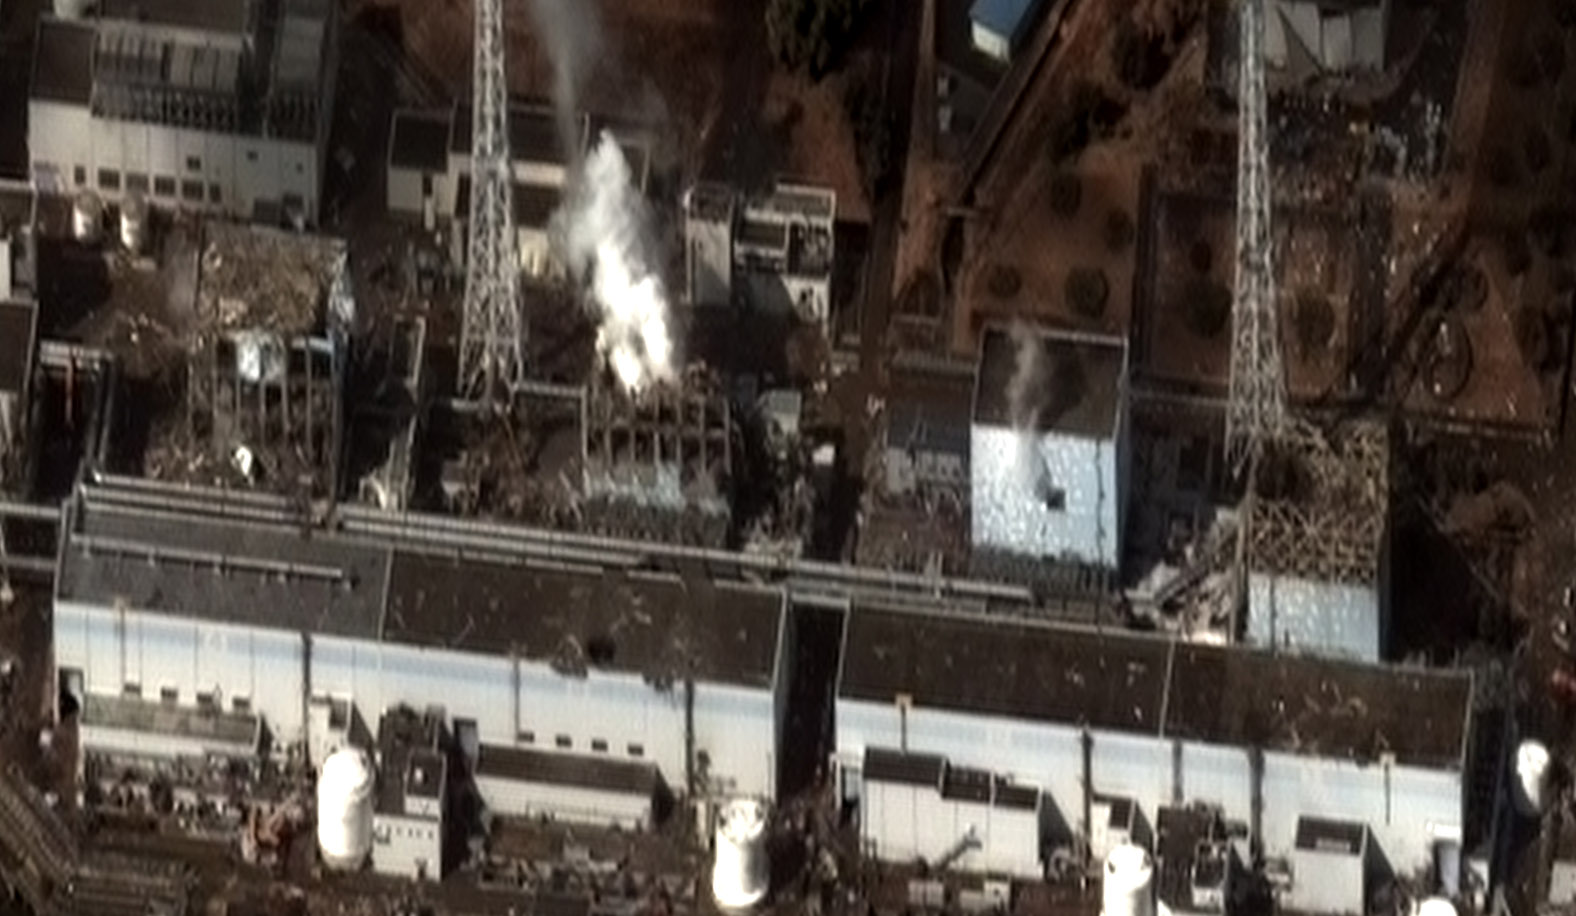 Aerial view of the Fukushima Daiichi Nuclear Power Plant, March 16, 2011. Photo courtesy of Digital Globe/Wikimedia Commons.